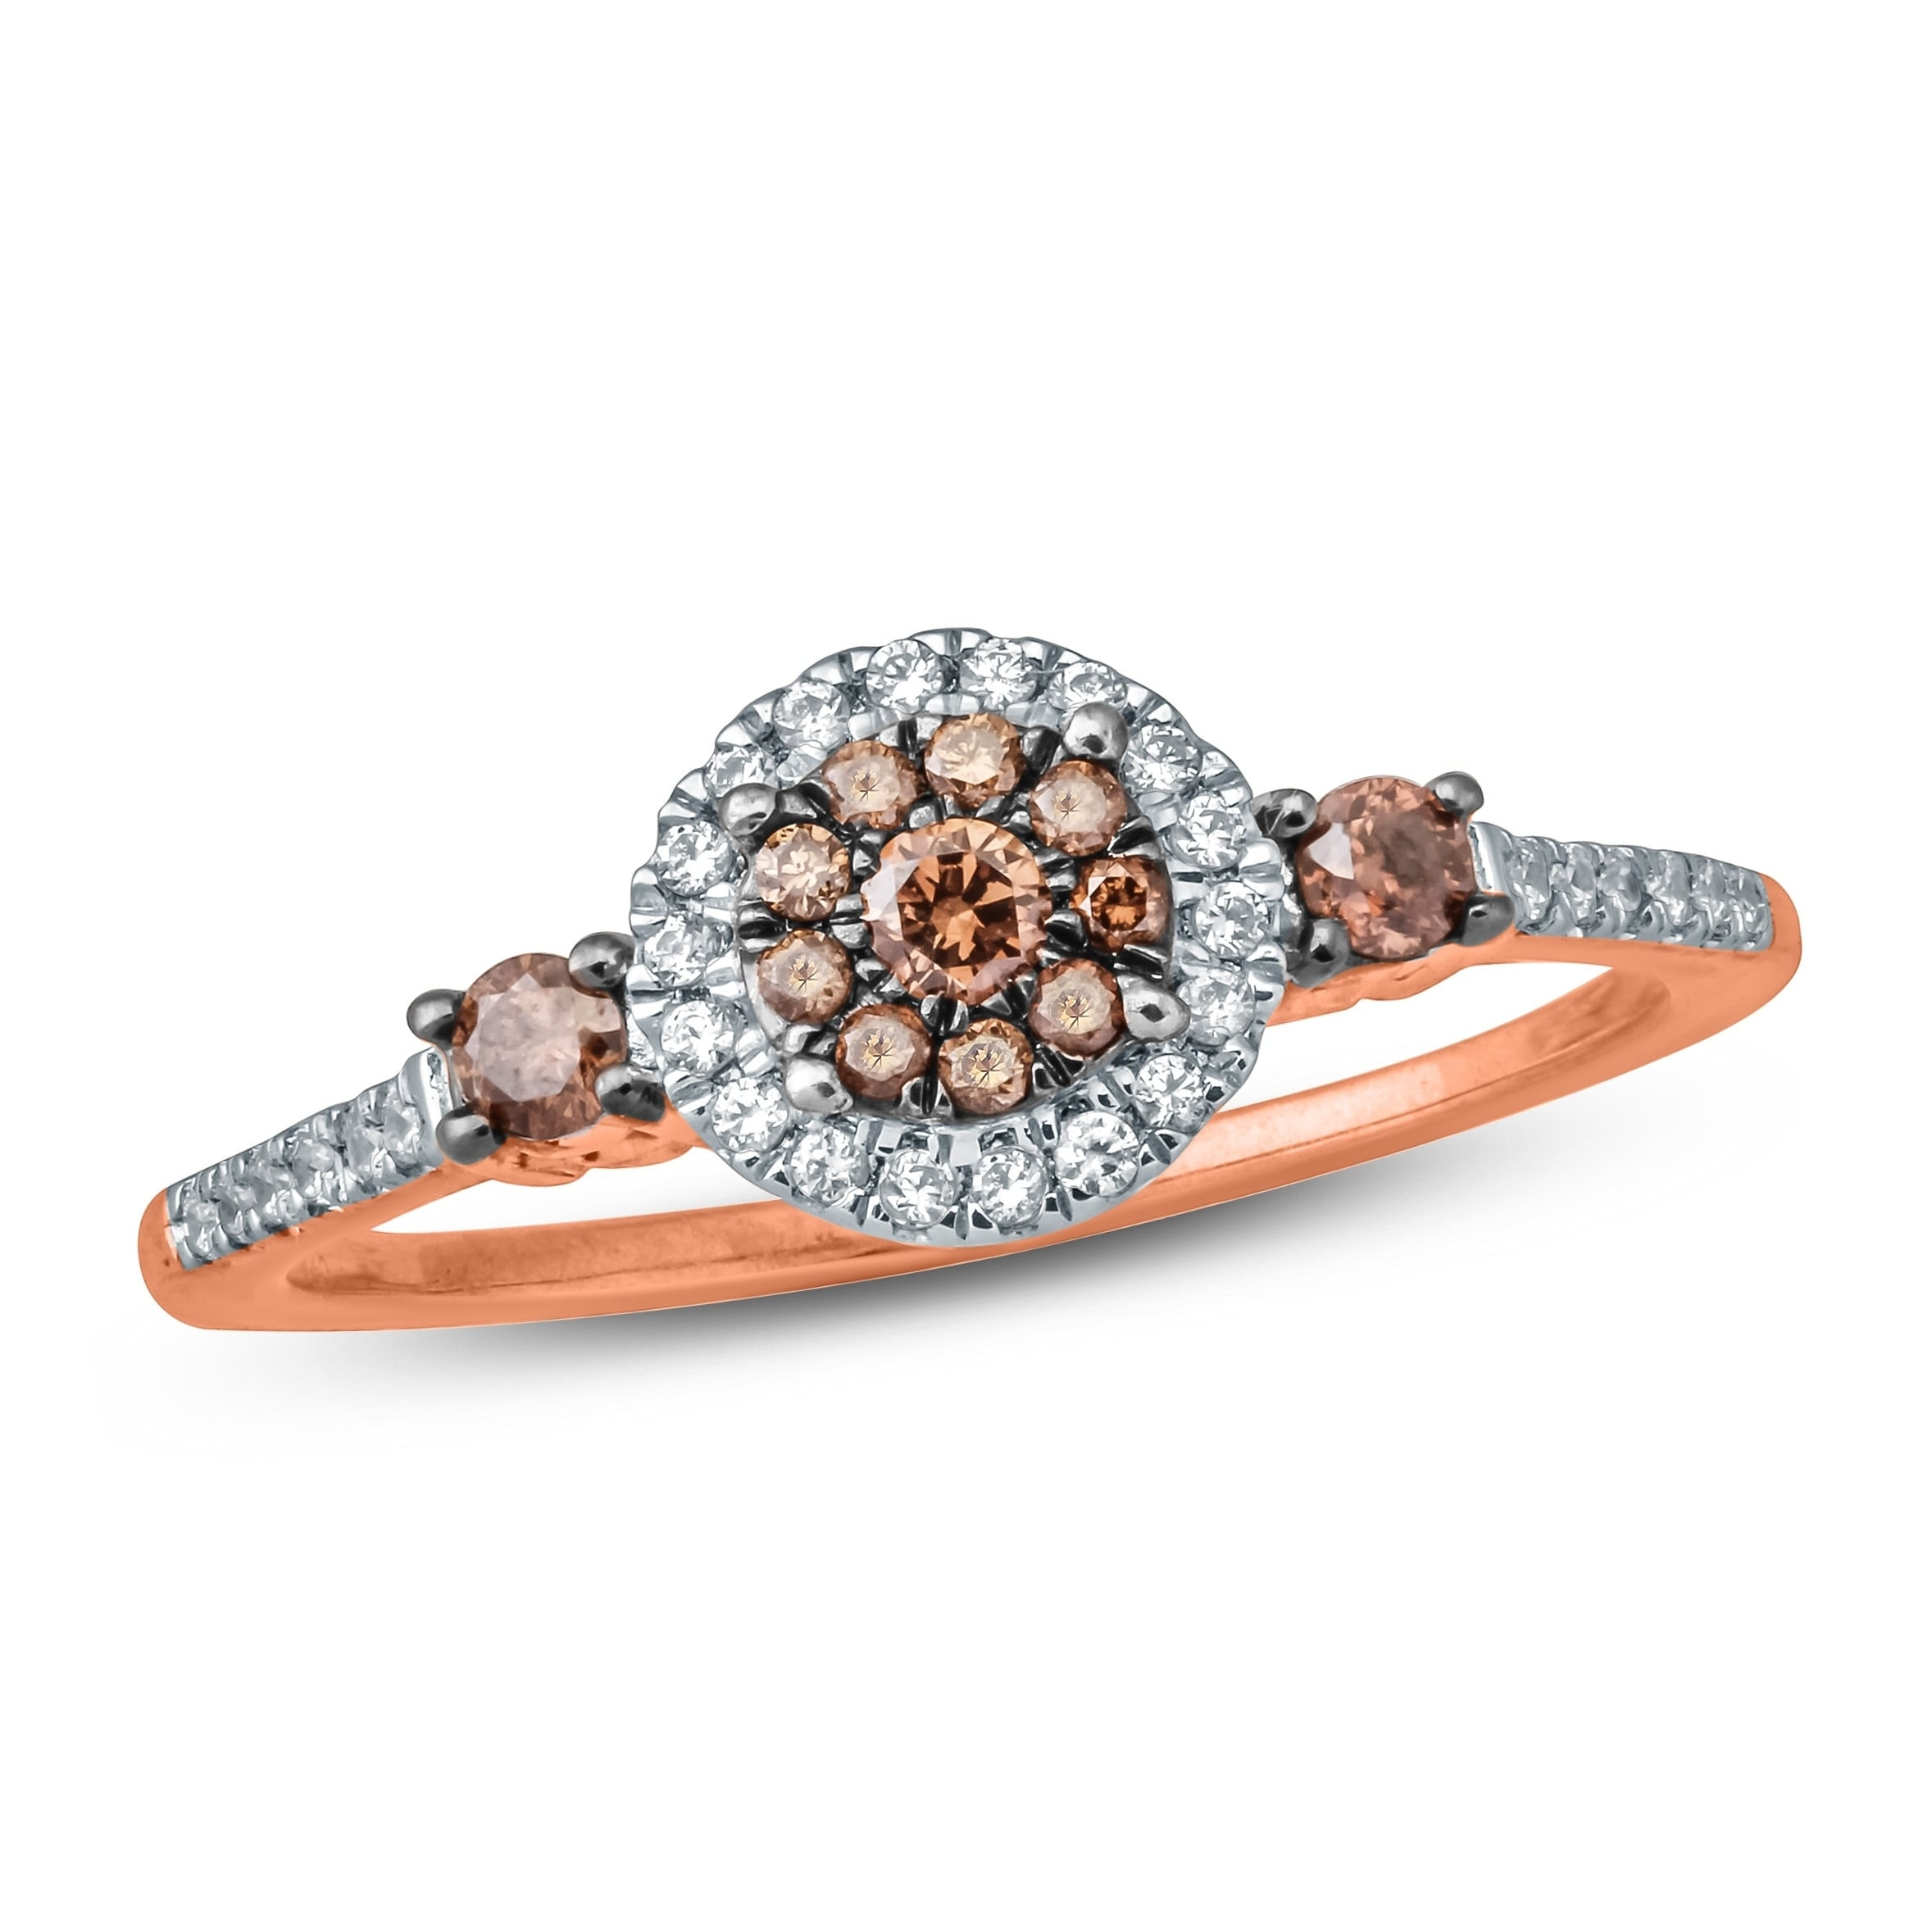 equilibrium kwon rings products champagne engagement diamond jennie designs ring